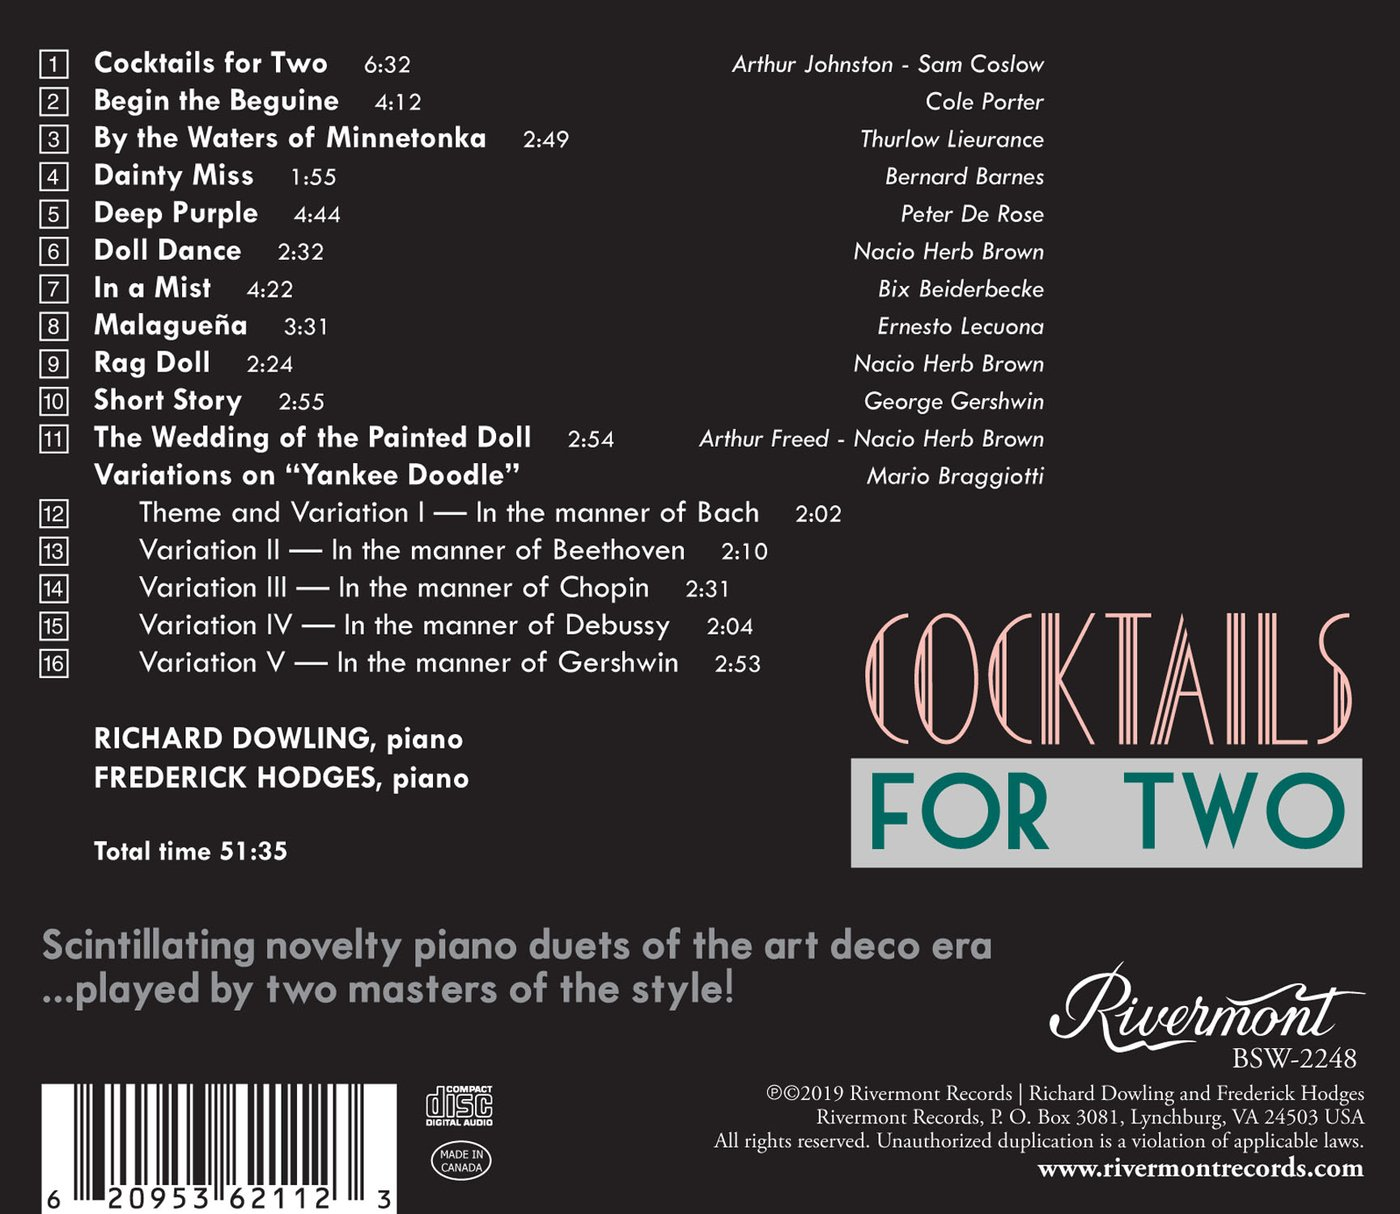 Cocktails For Two - Back Cover